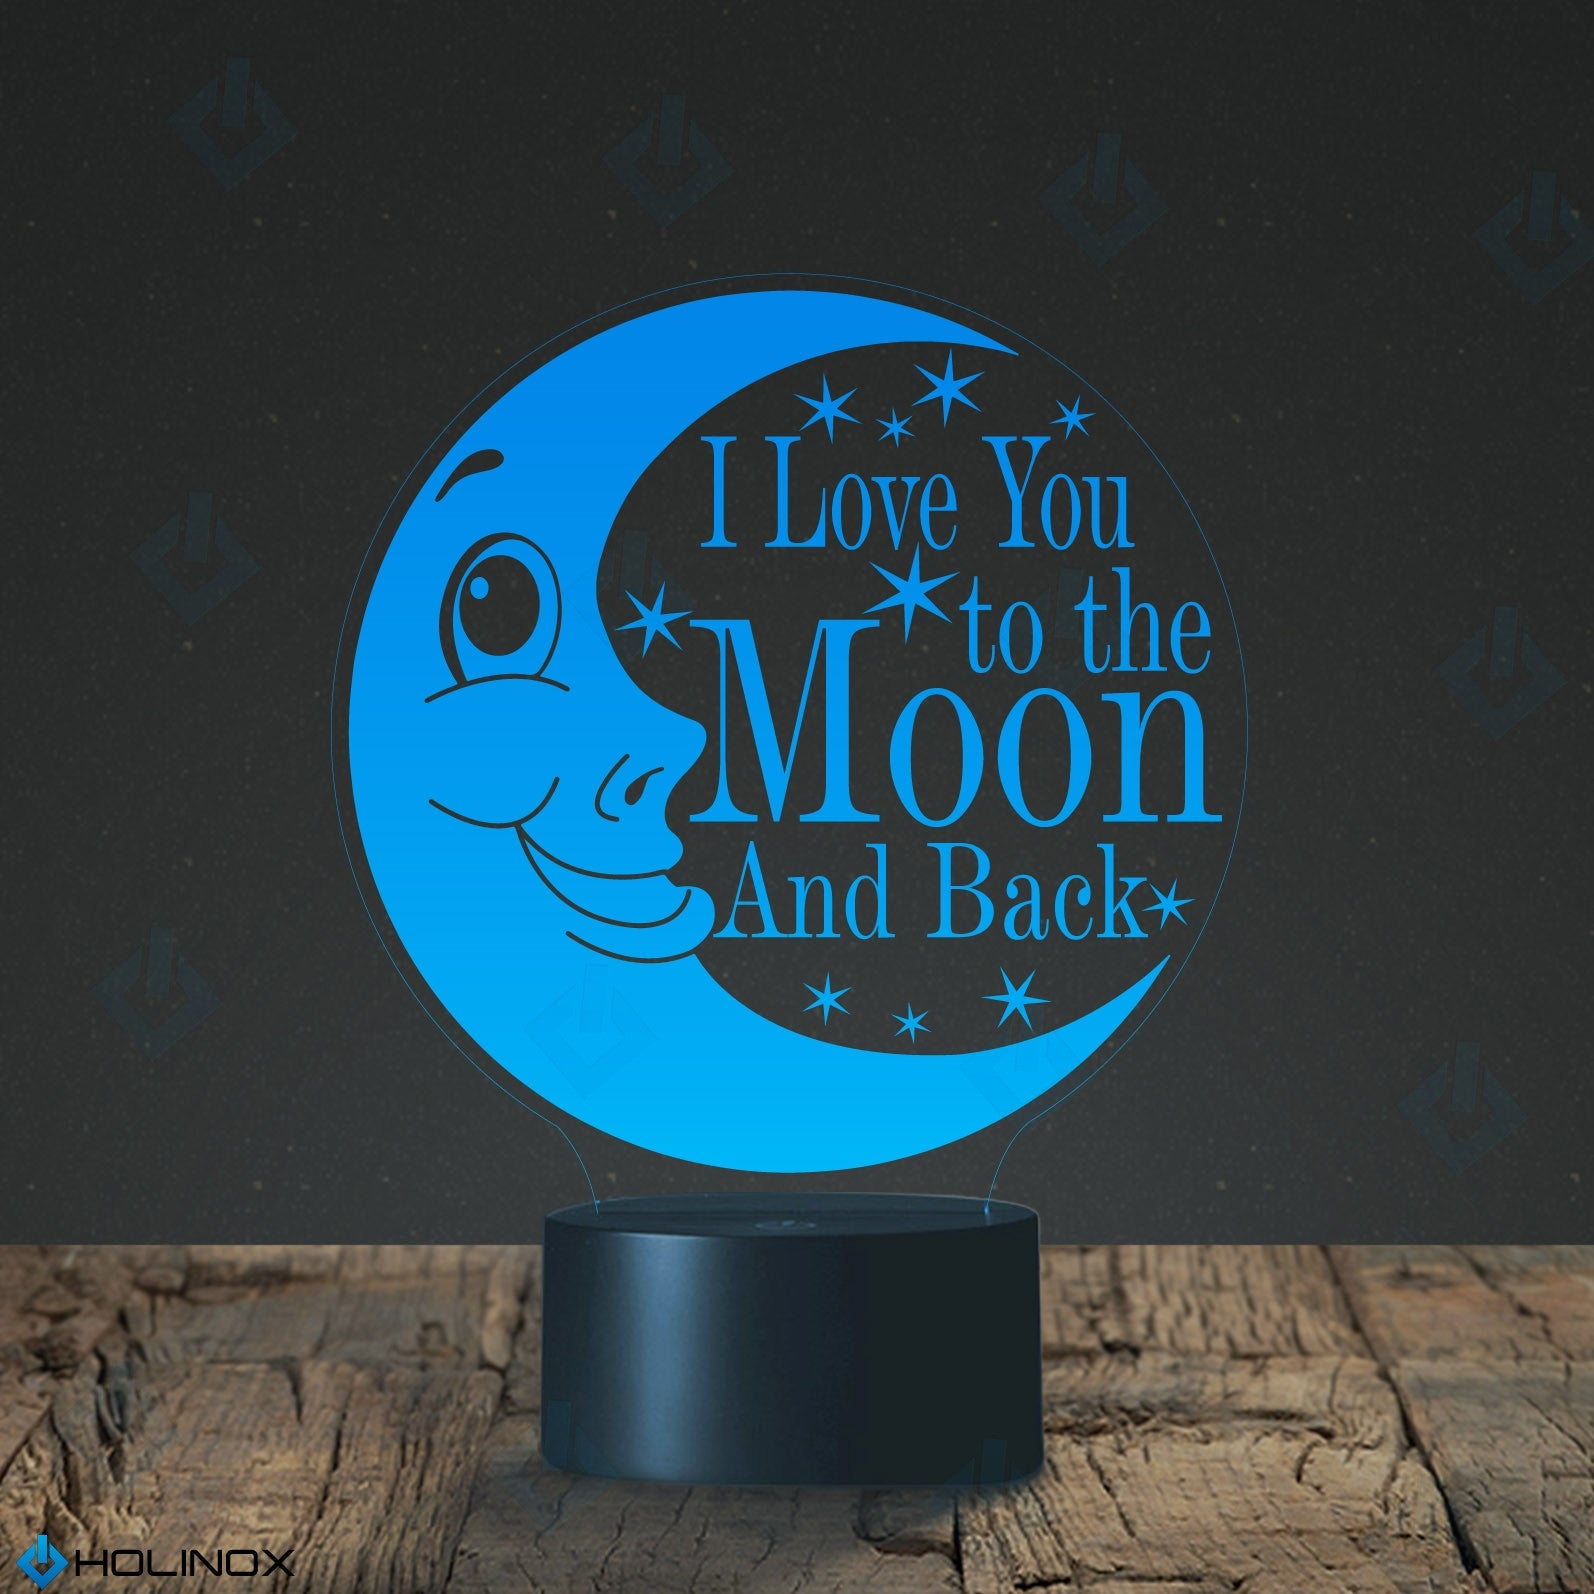 Quote I Love You To The Moon And Back I Love You To The Moon And Back Amelia Hepworth Quote Children's